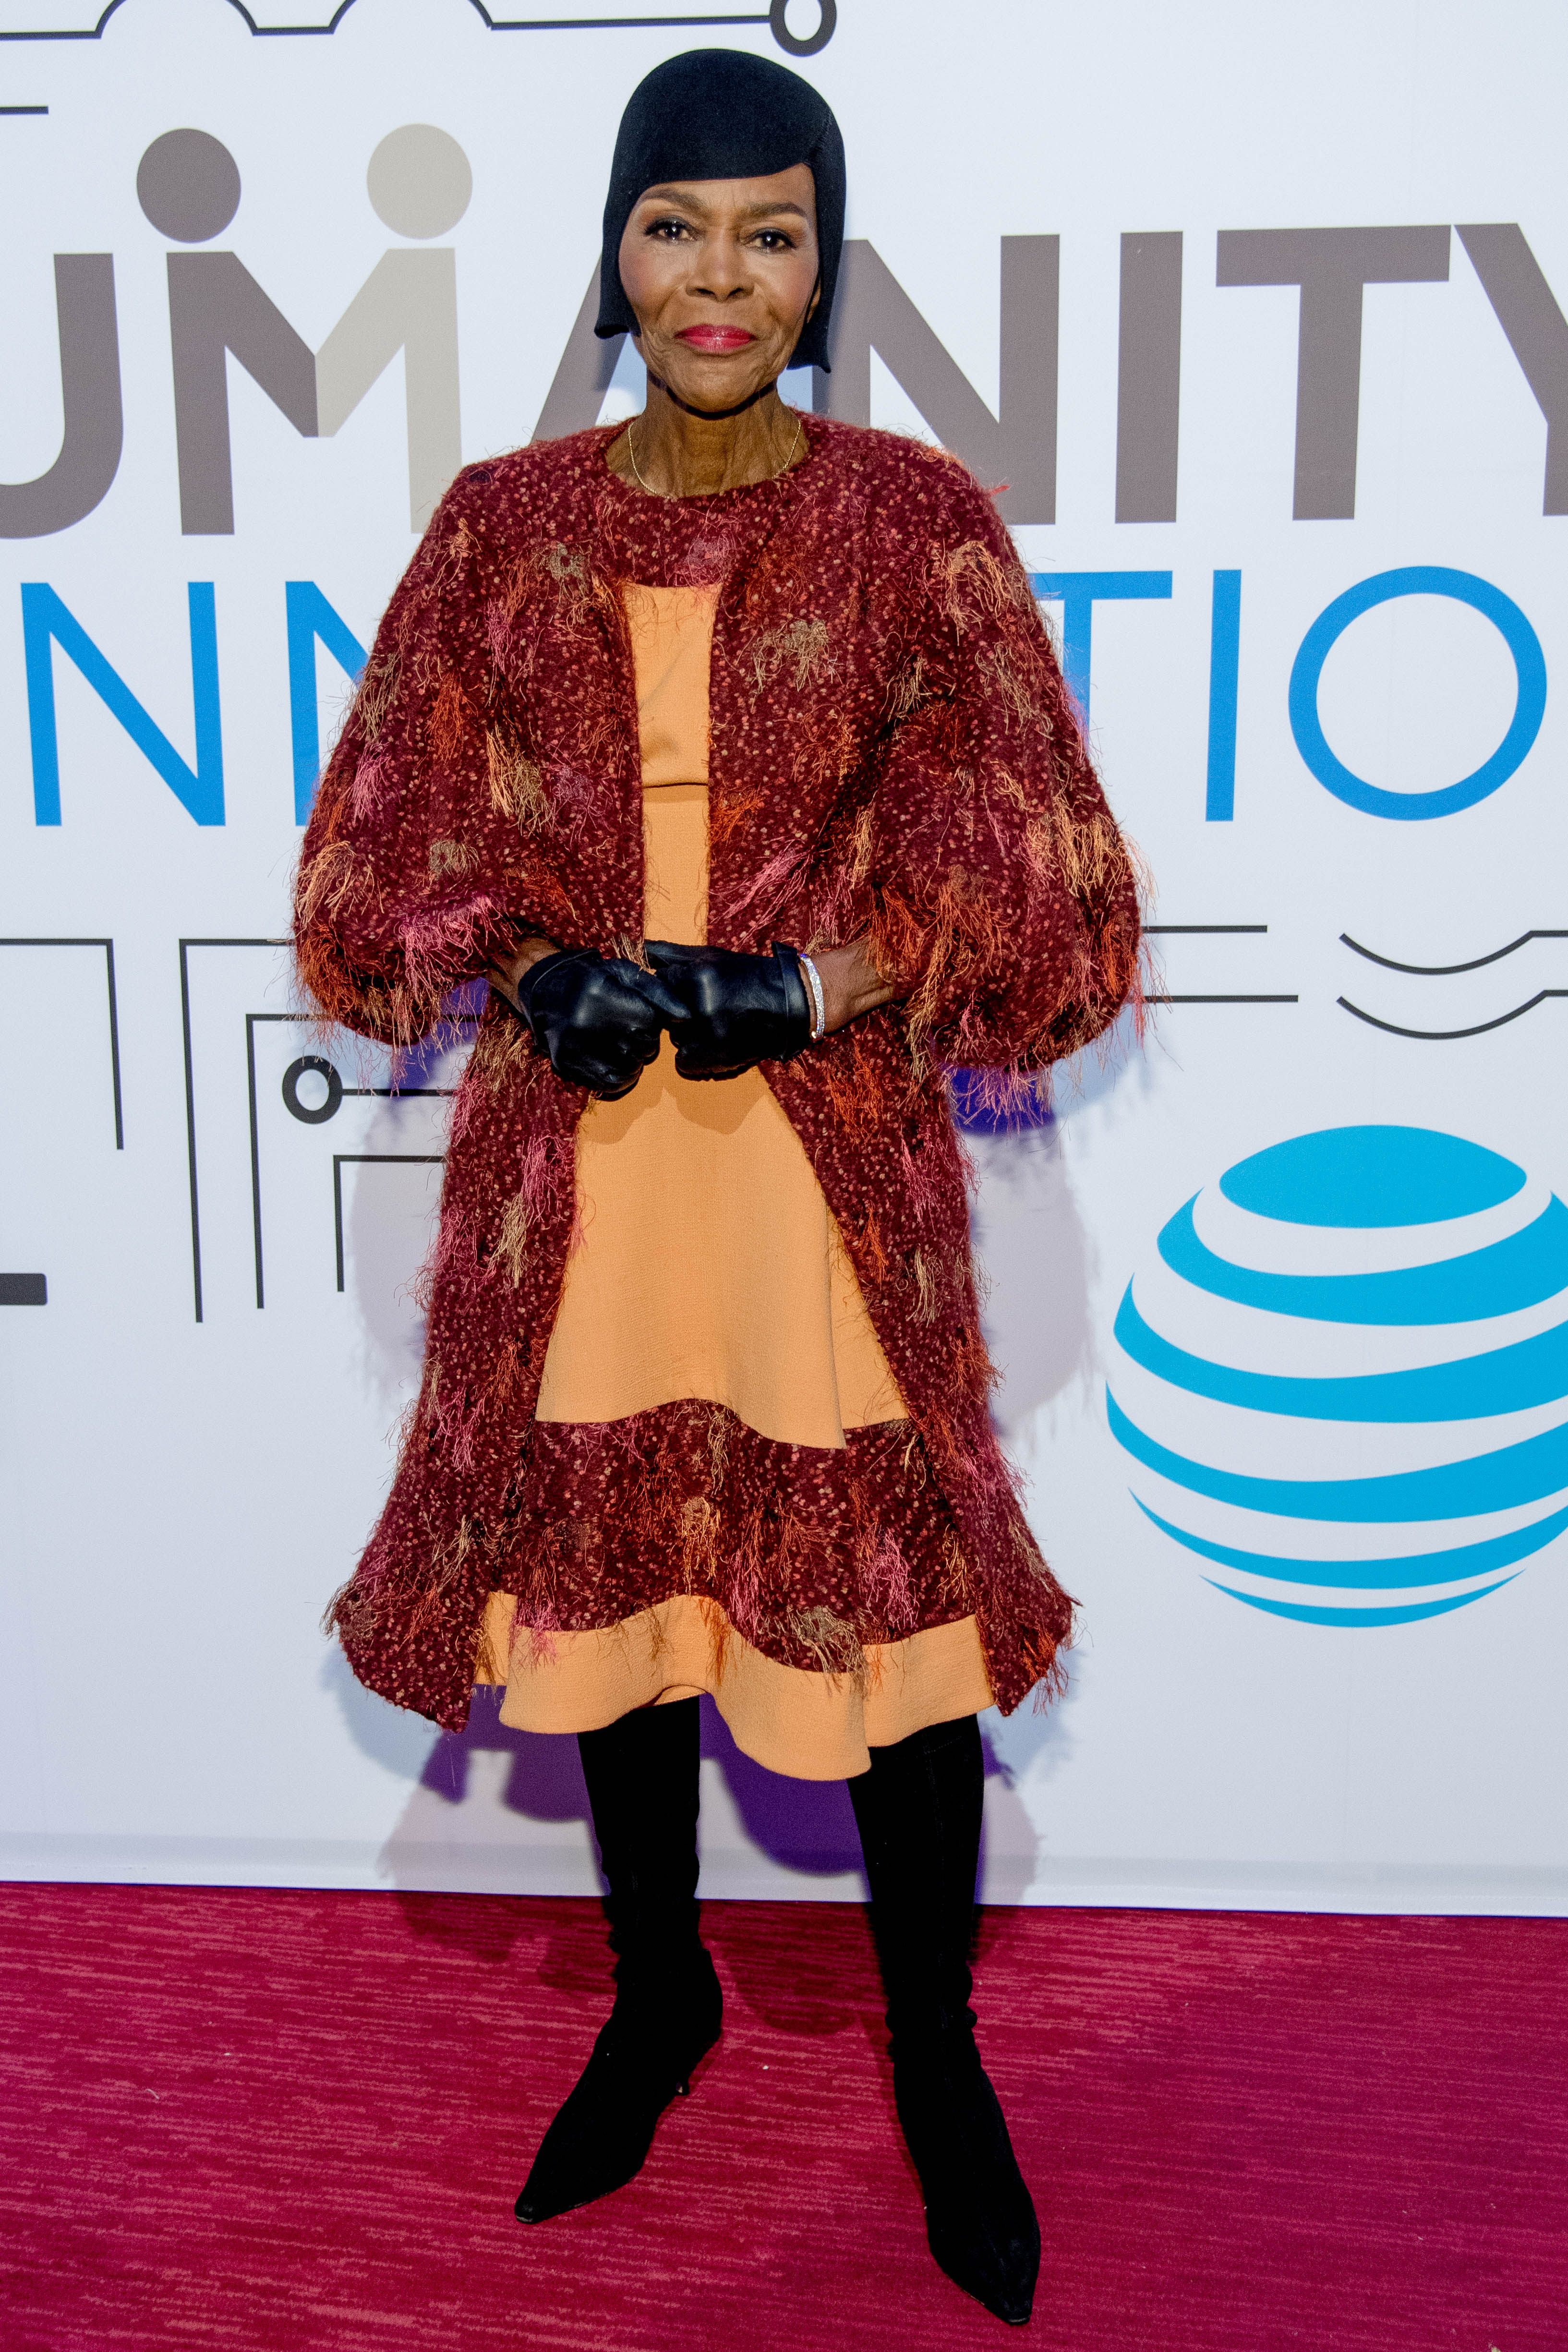 Cicely Tyson, ESSENCE President Michelle EbanksAndMore Honored At Humanity Of Connection MLK Event